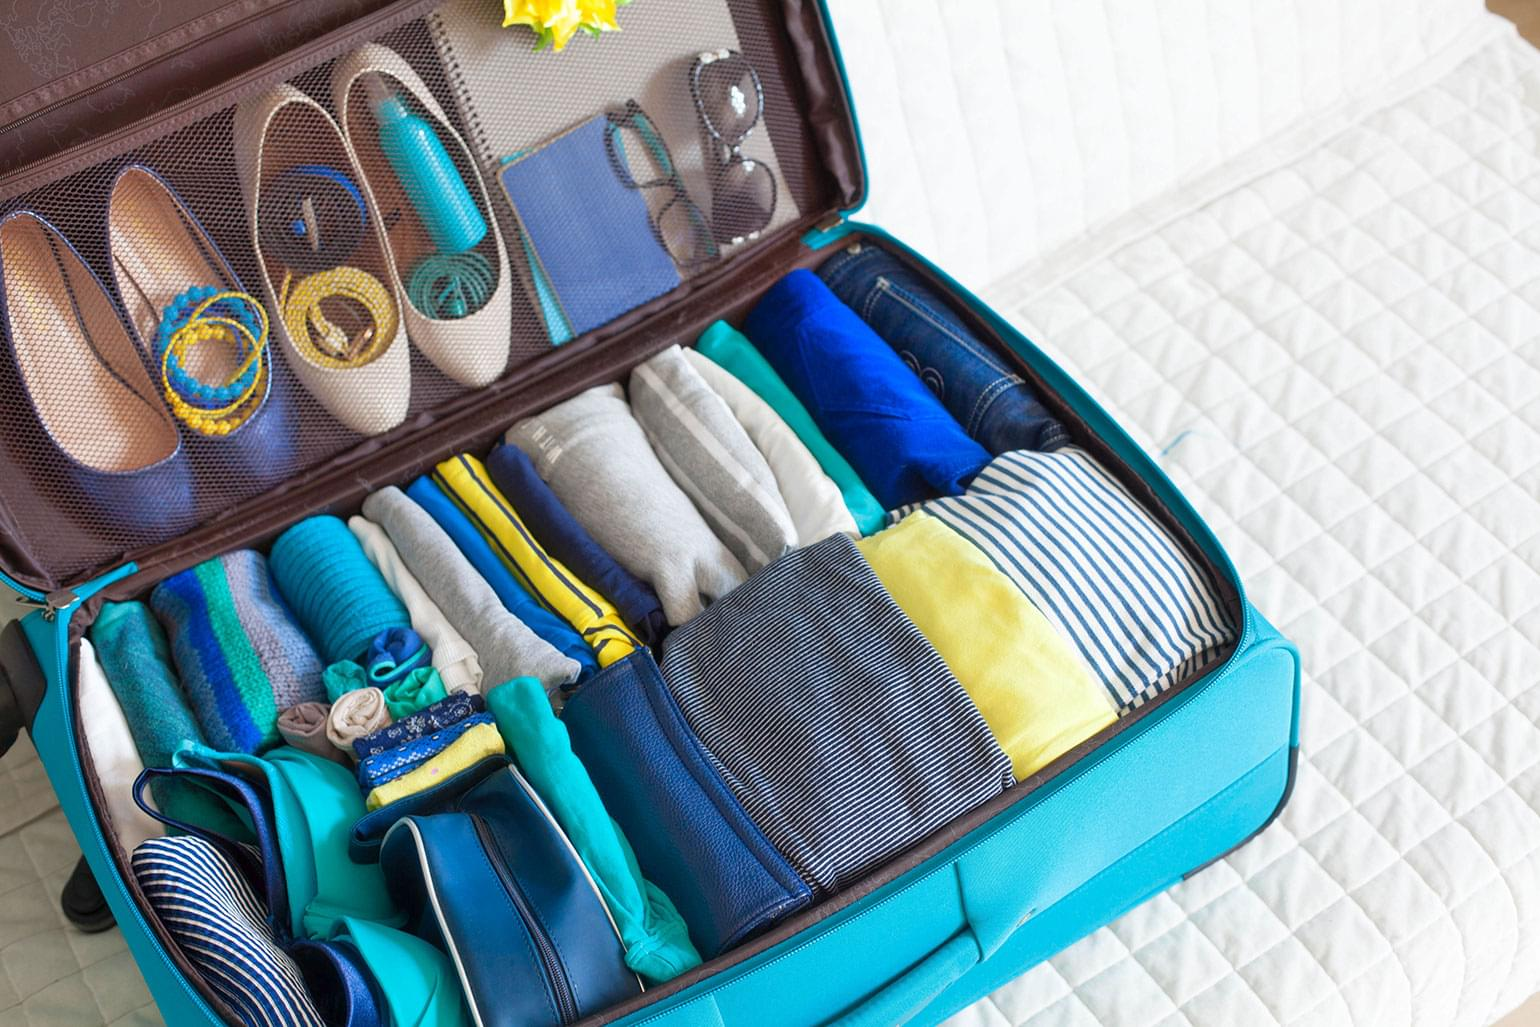 Suitcase packed neatly with clothes rolled and organized.